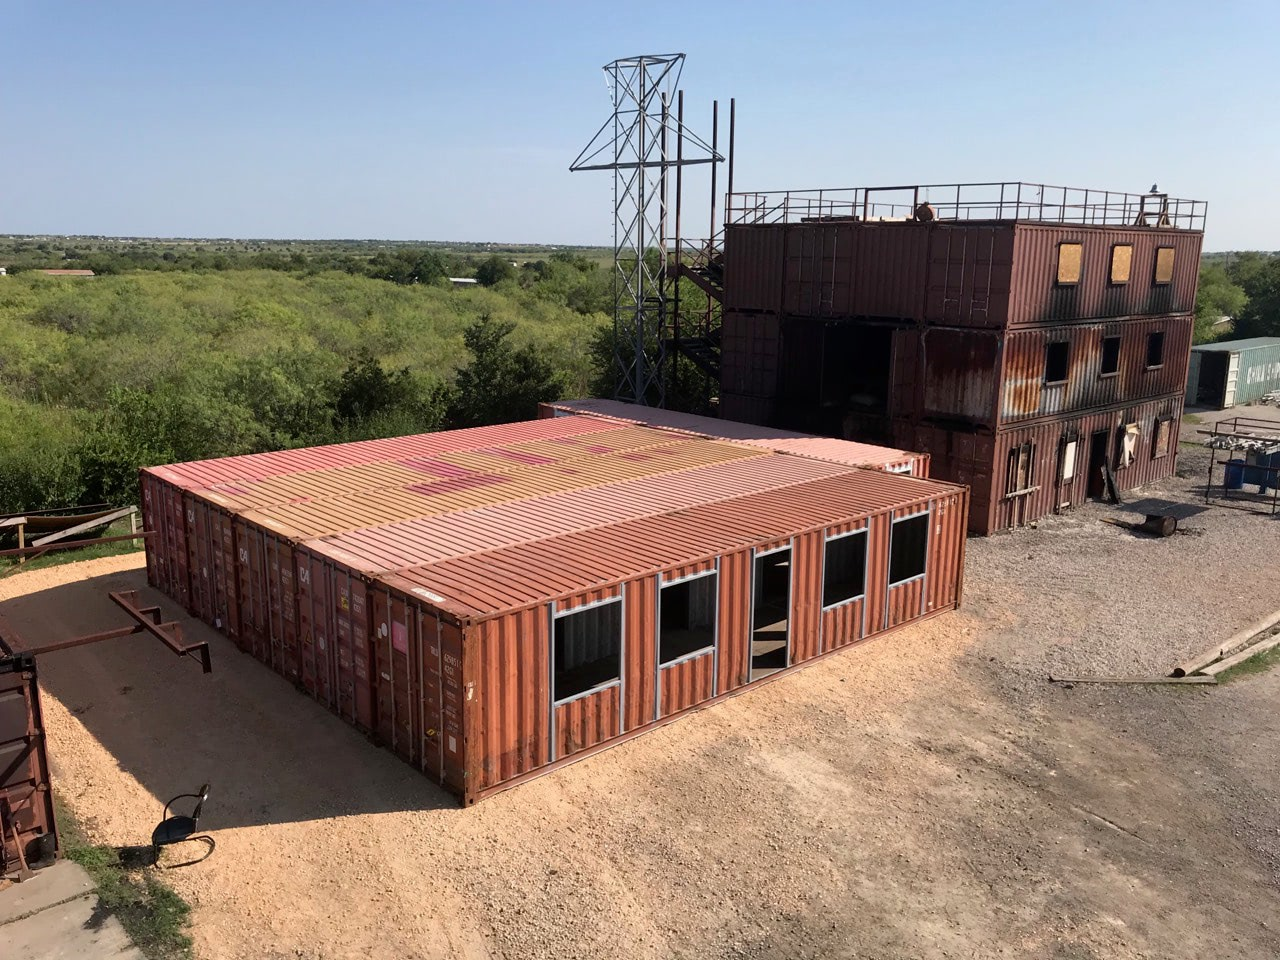 Shipping container training structure for fire fighters